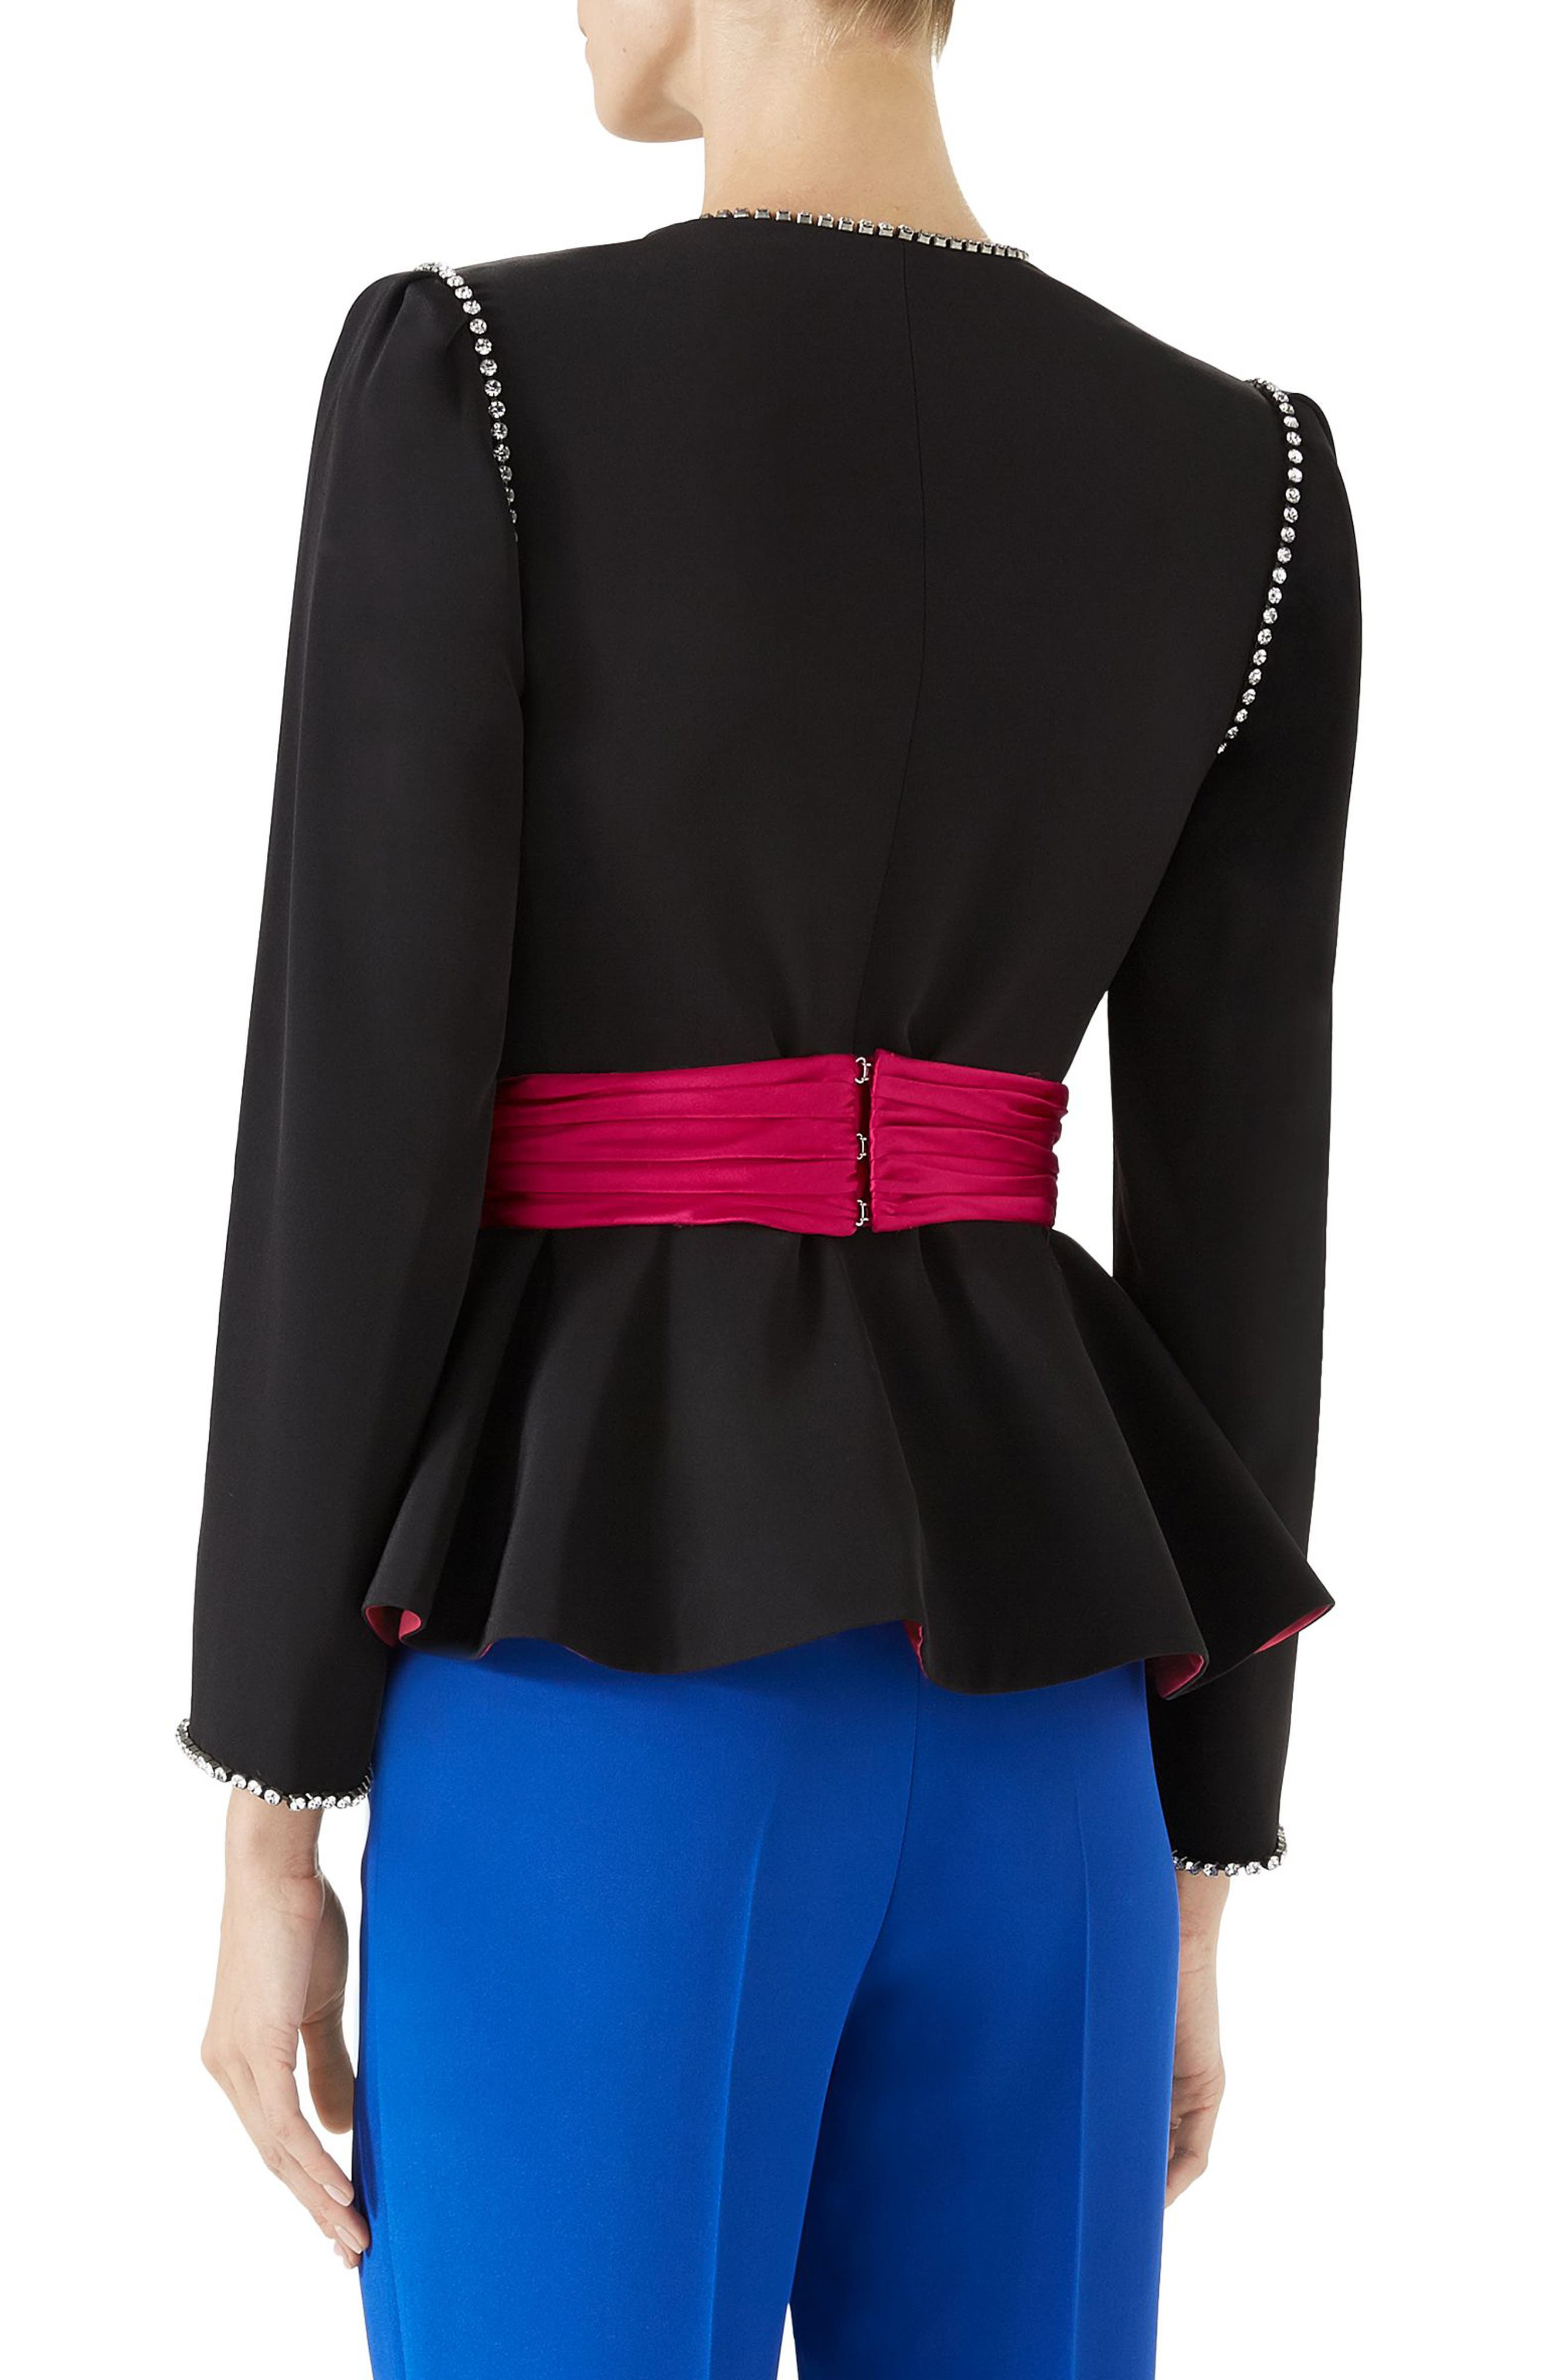 Bow Detail Marocain Jacket,                             Alternate thumbnail 2, color,                             Black/ Raspberry Juice